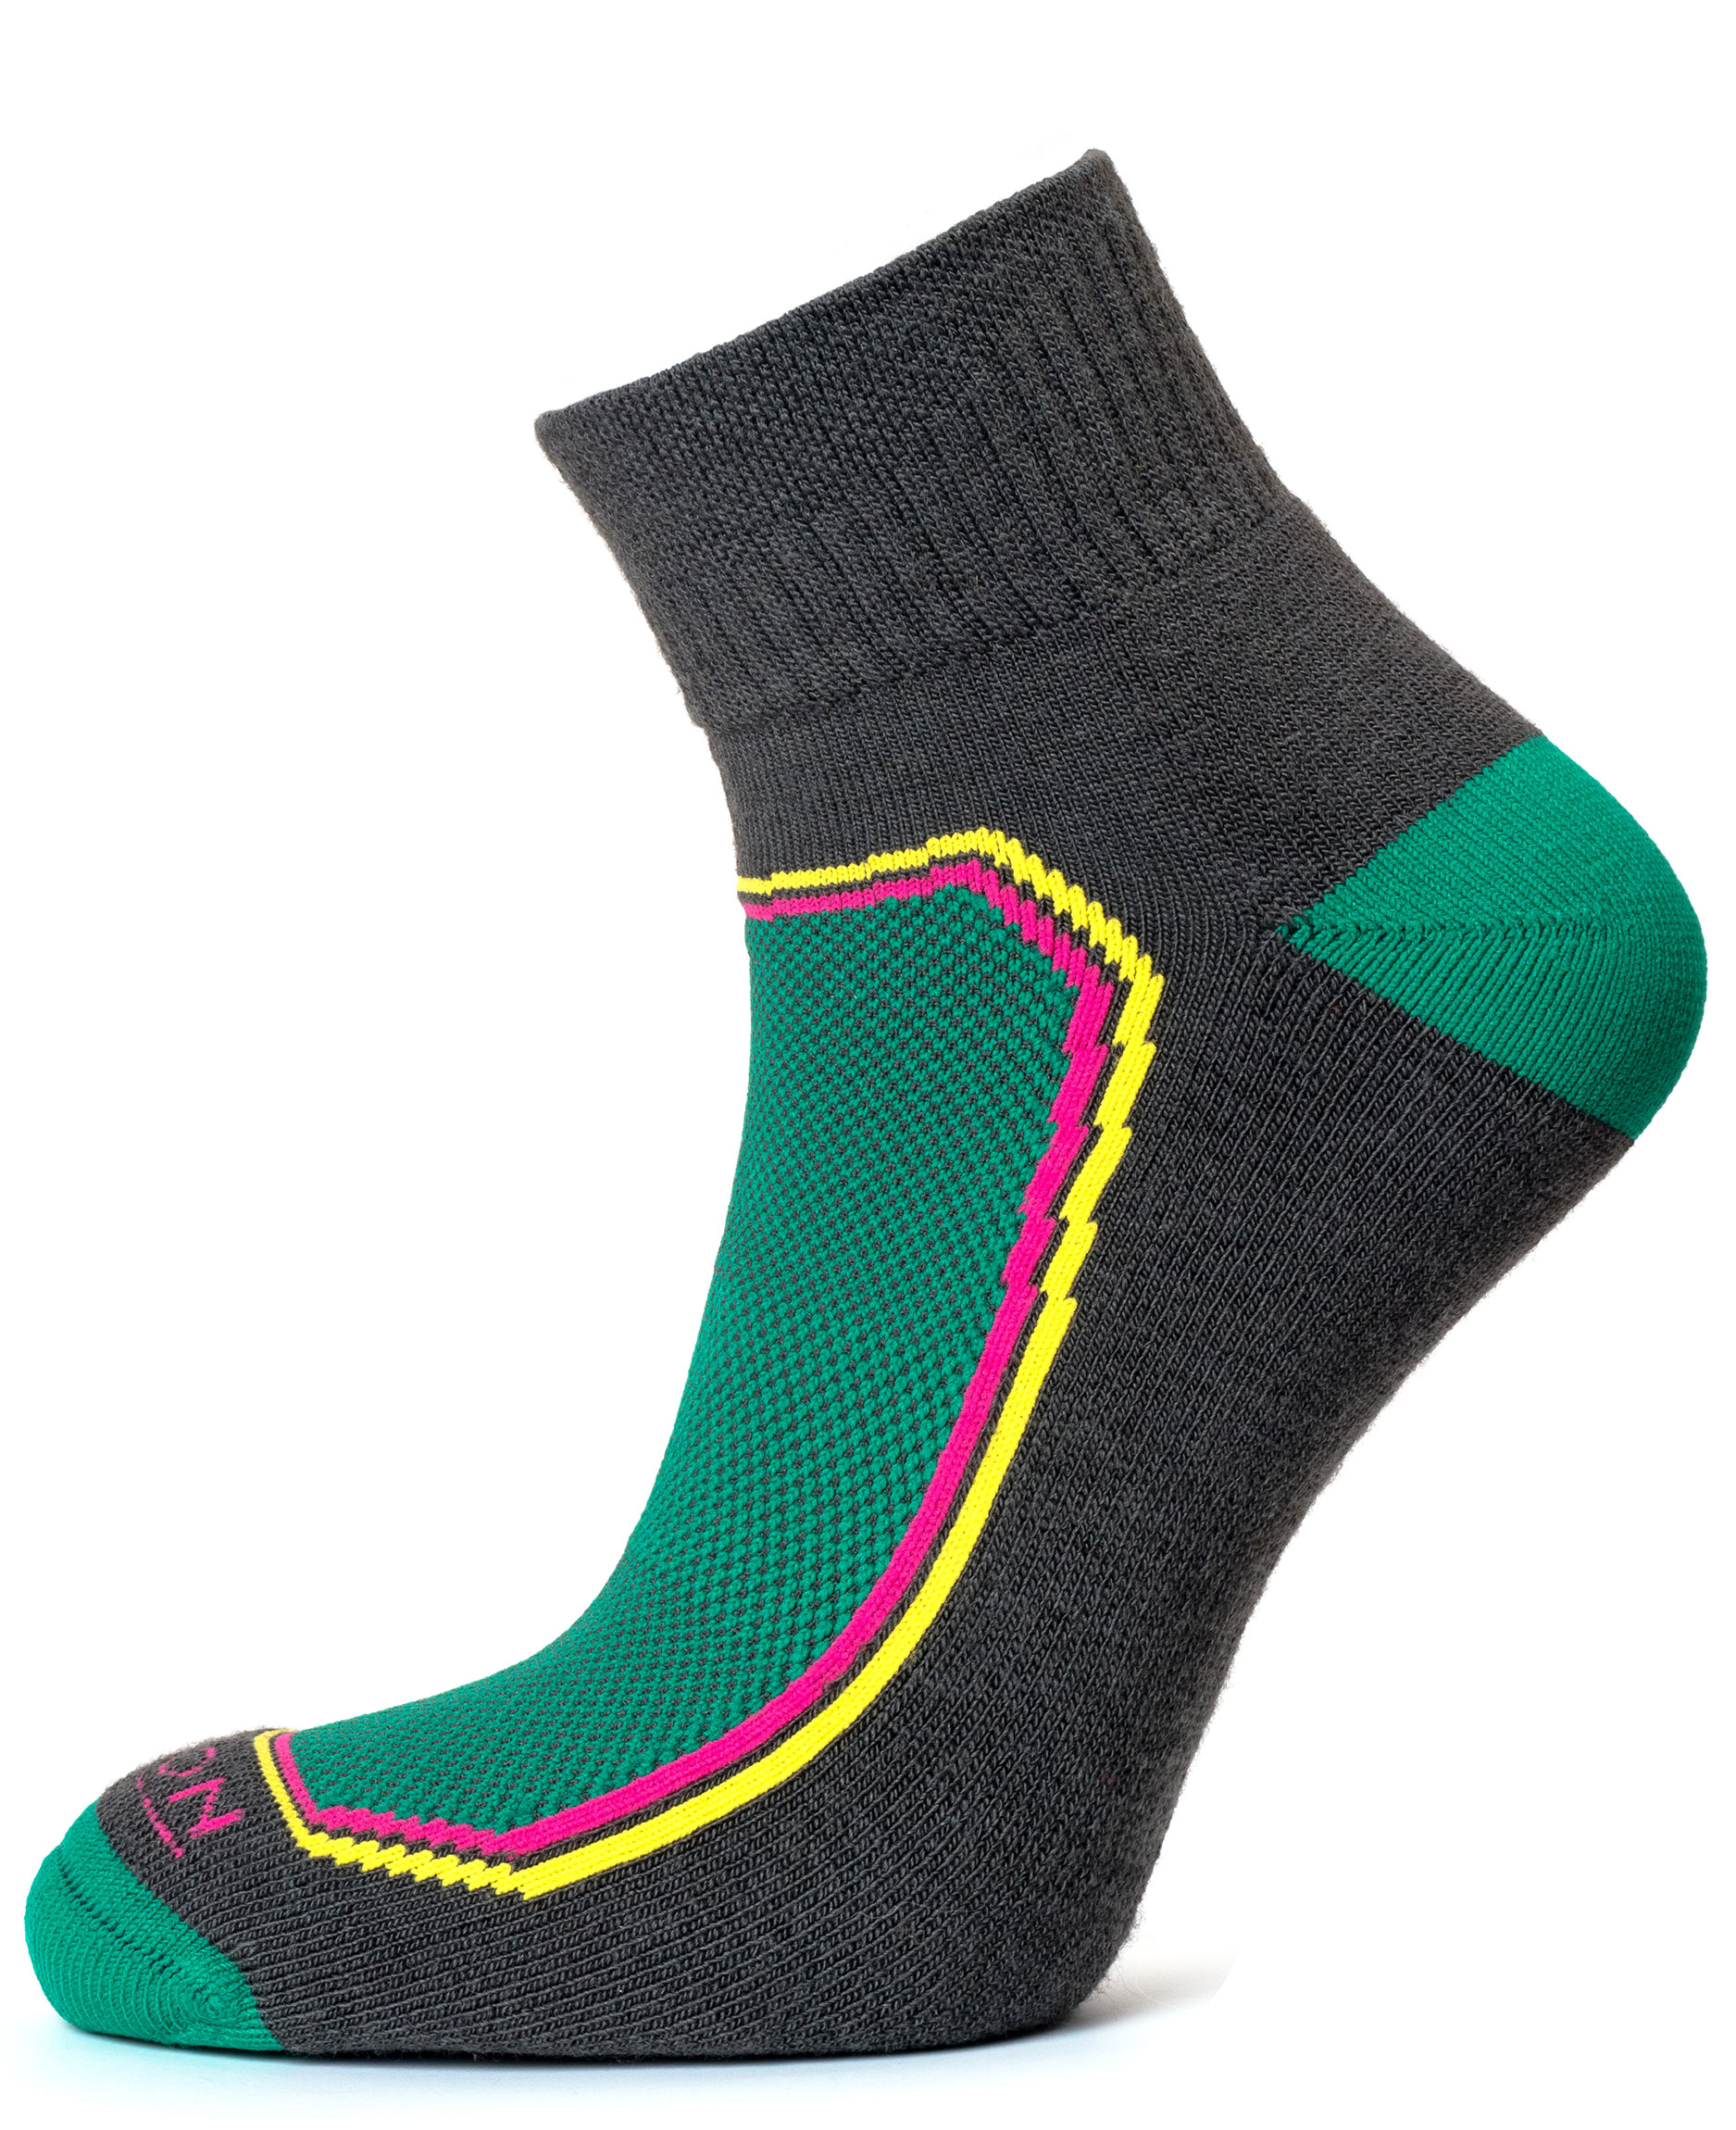 Premium Merino Quarter Sock Grey Lime